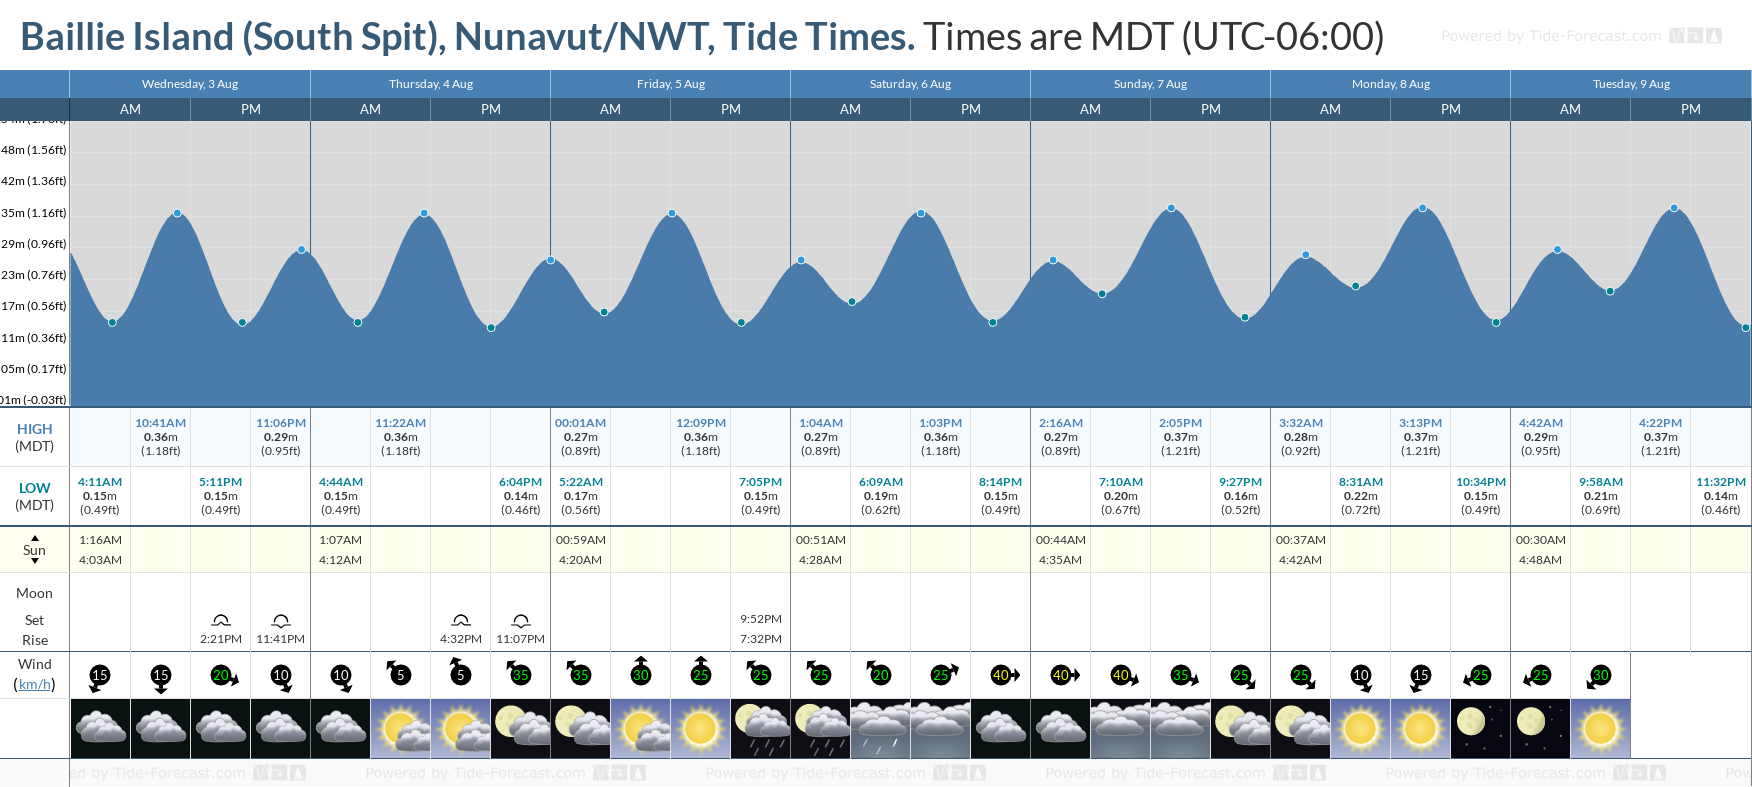 Baillie Island (South Spit), Nunavut/NWT Tide Chart including high and low tide tide times for the next 7 days